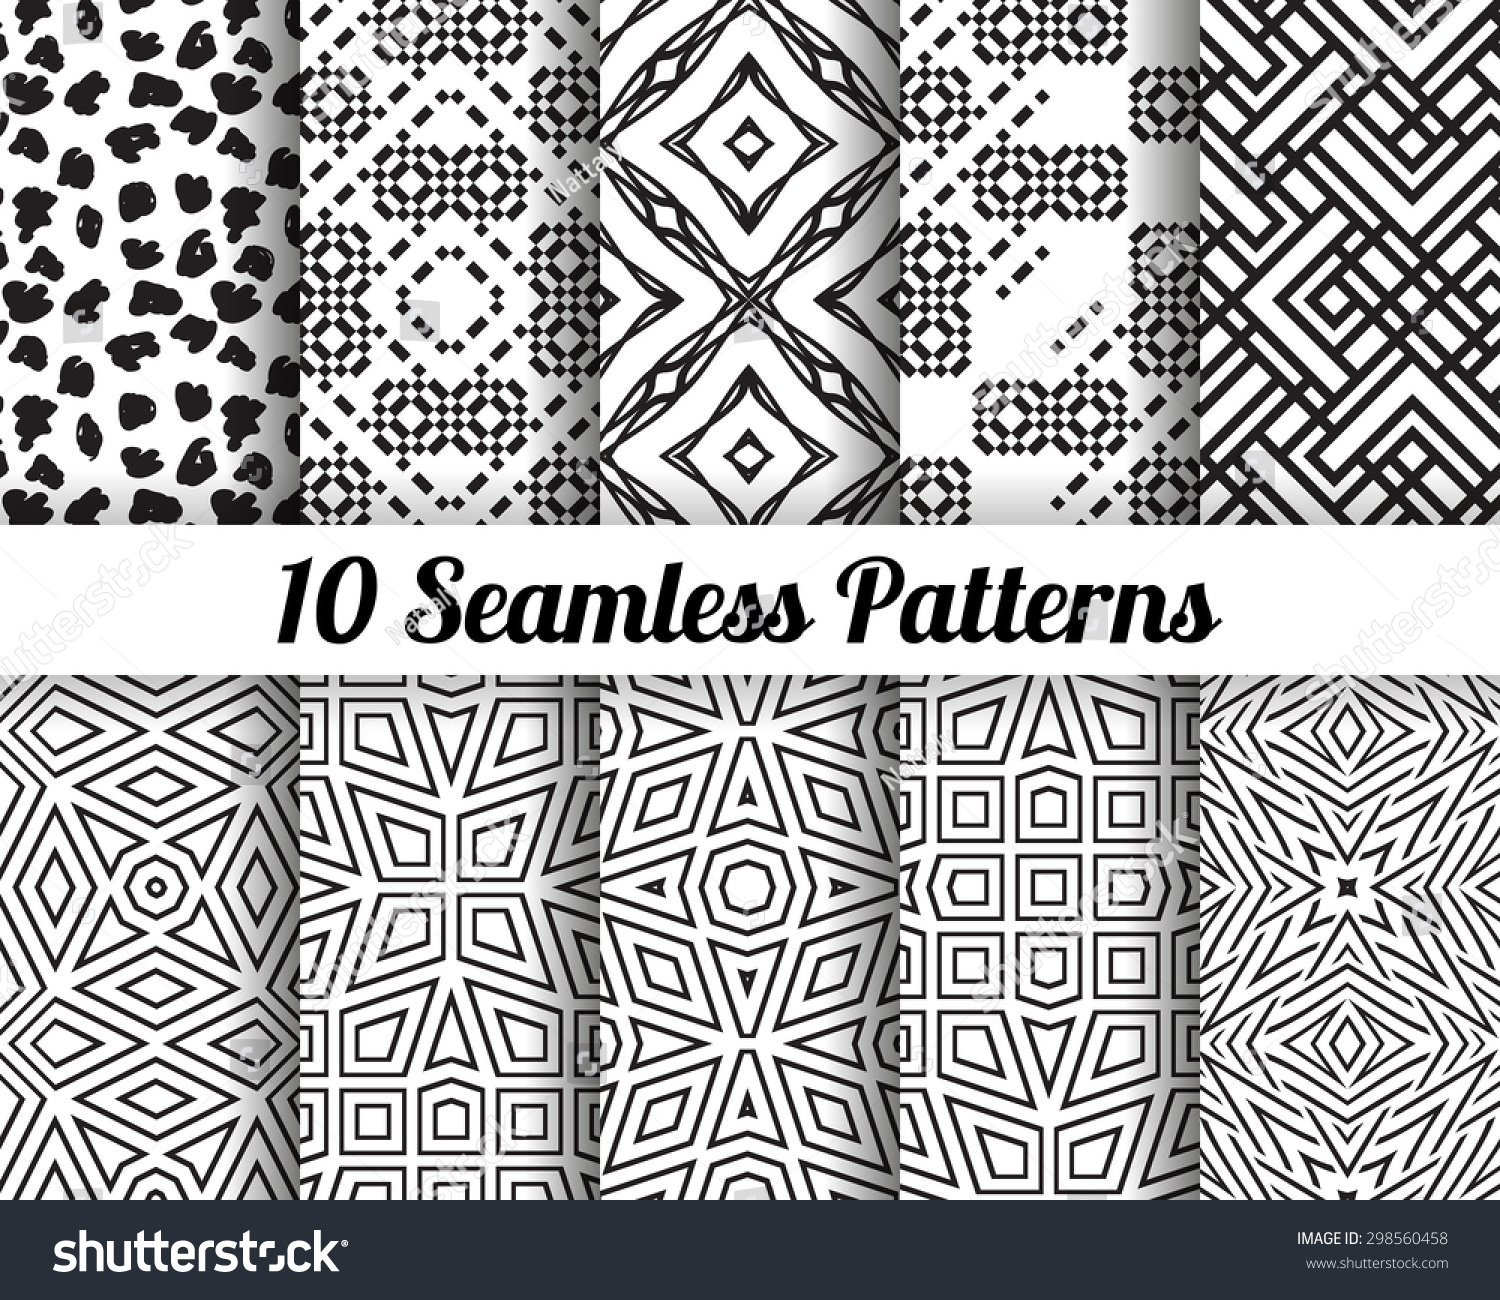 Set of 10 Abstract patterns Black and white geometric seamless vector backgrounds